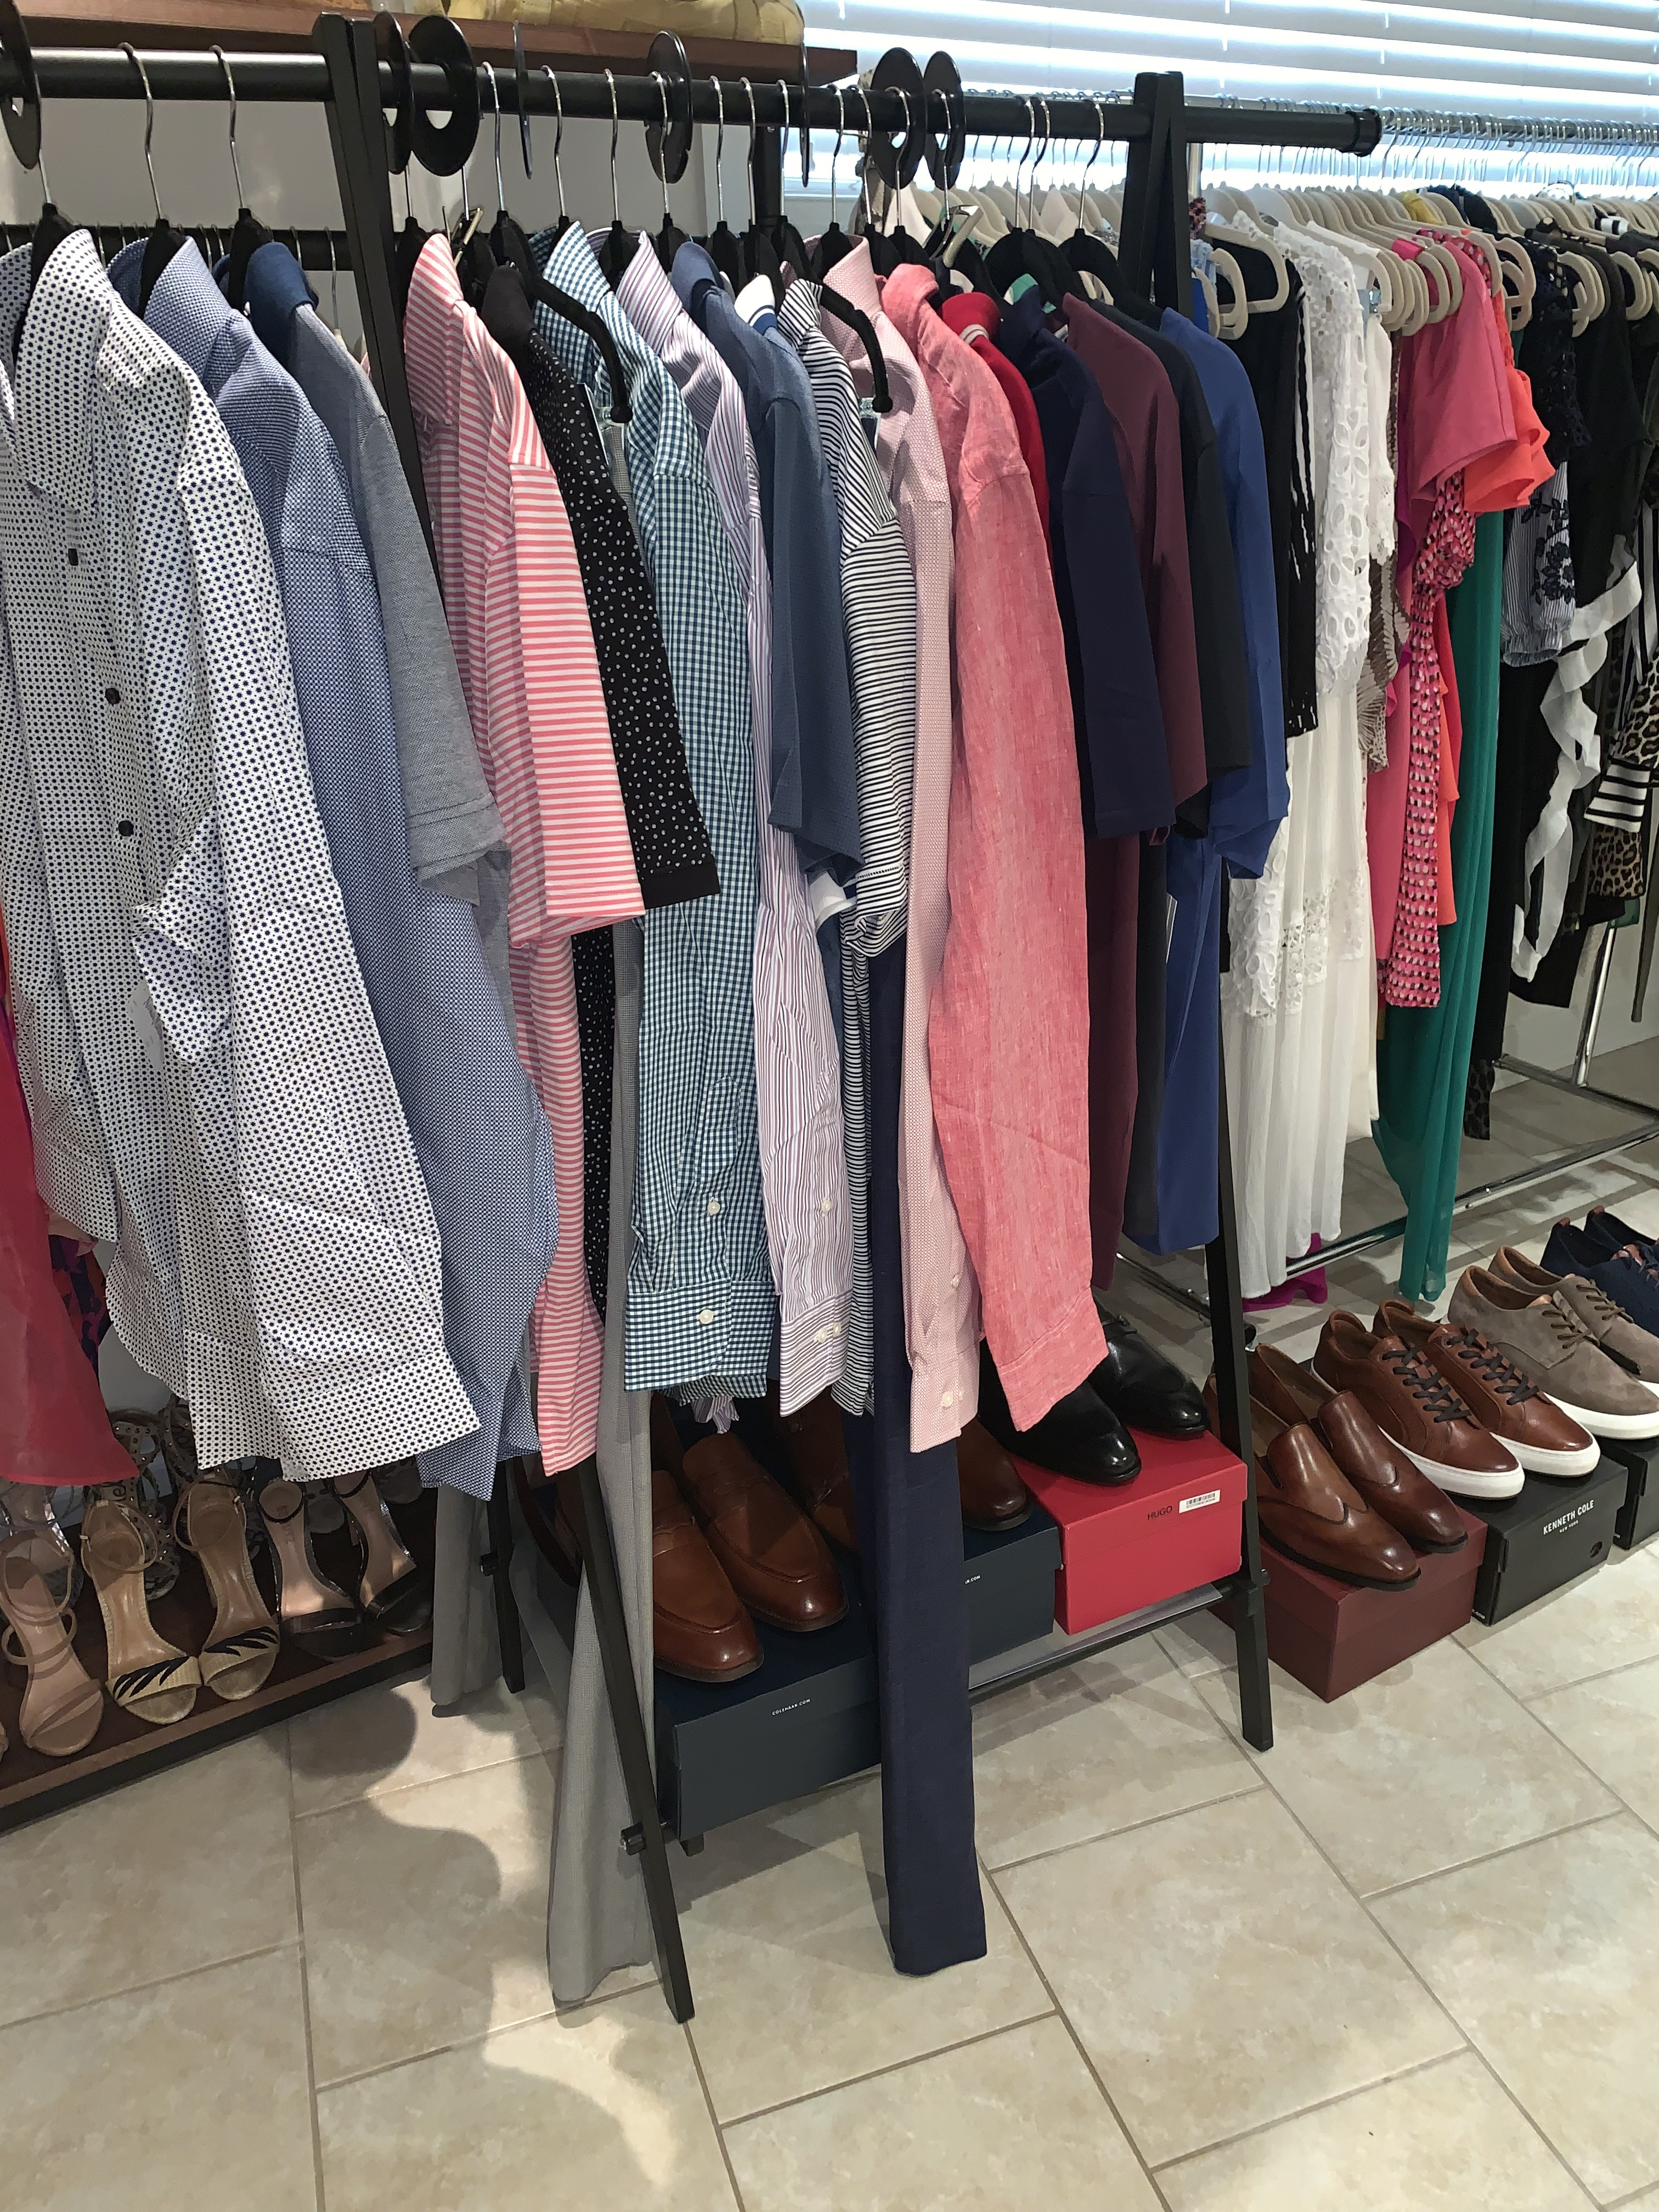 Men's summer shopping, men's summer personal fitting, men's business casual attire, men's stylist, men's personal fitting